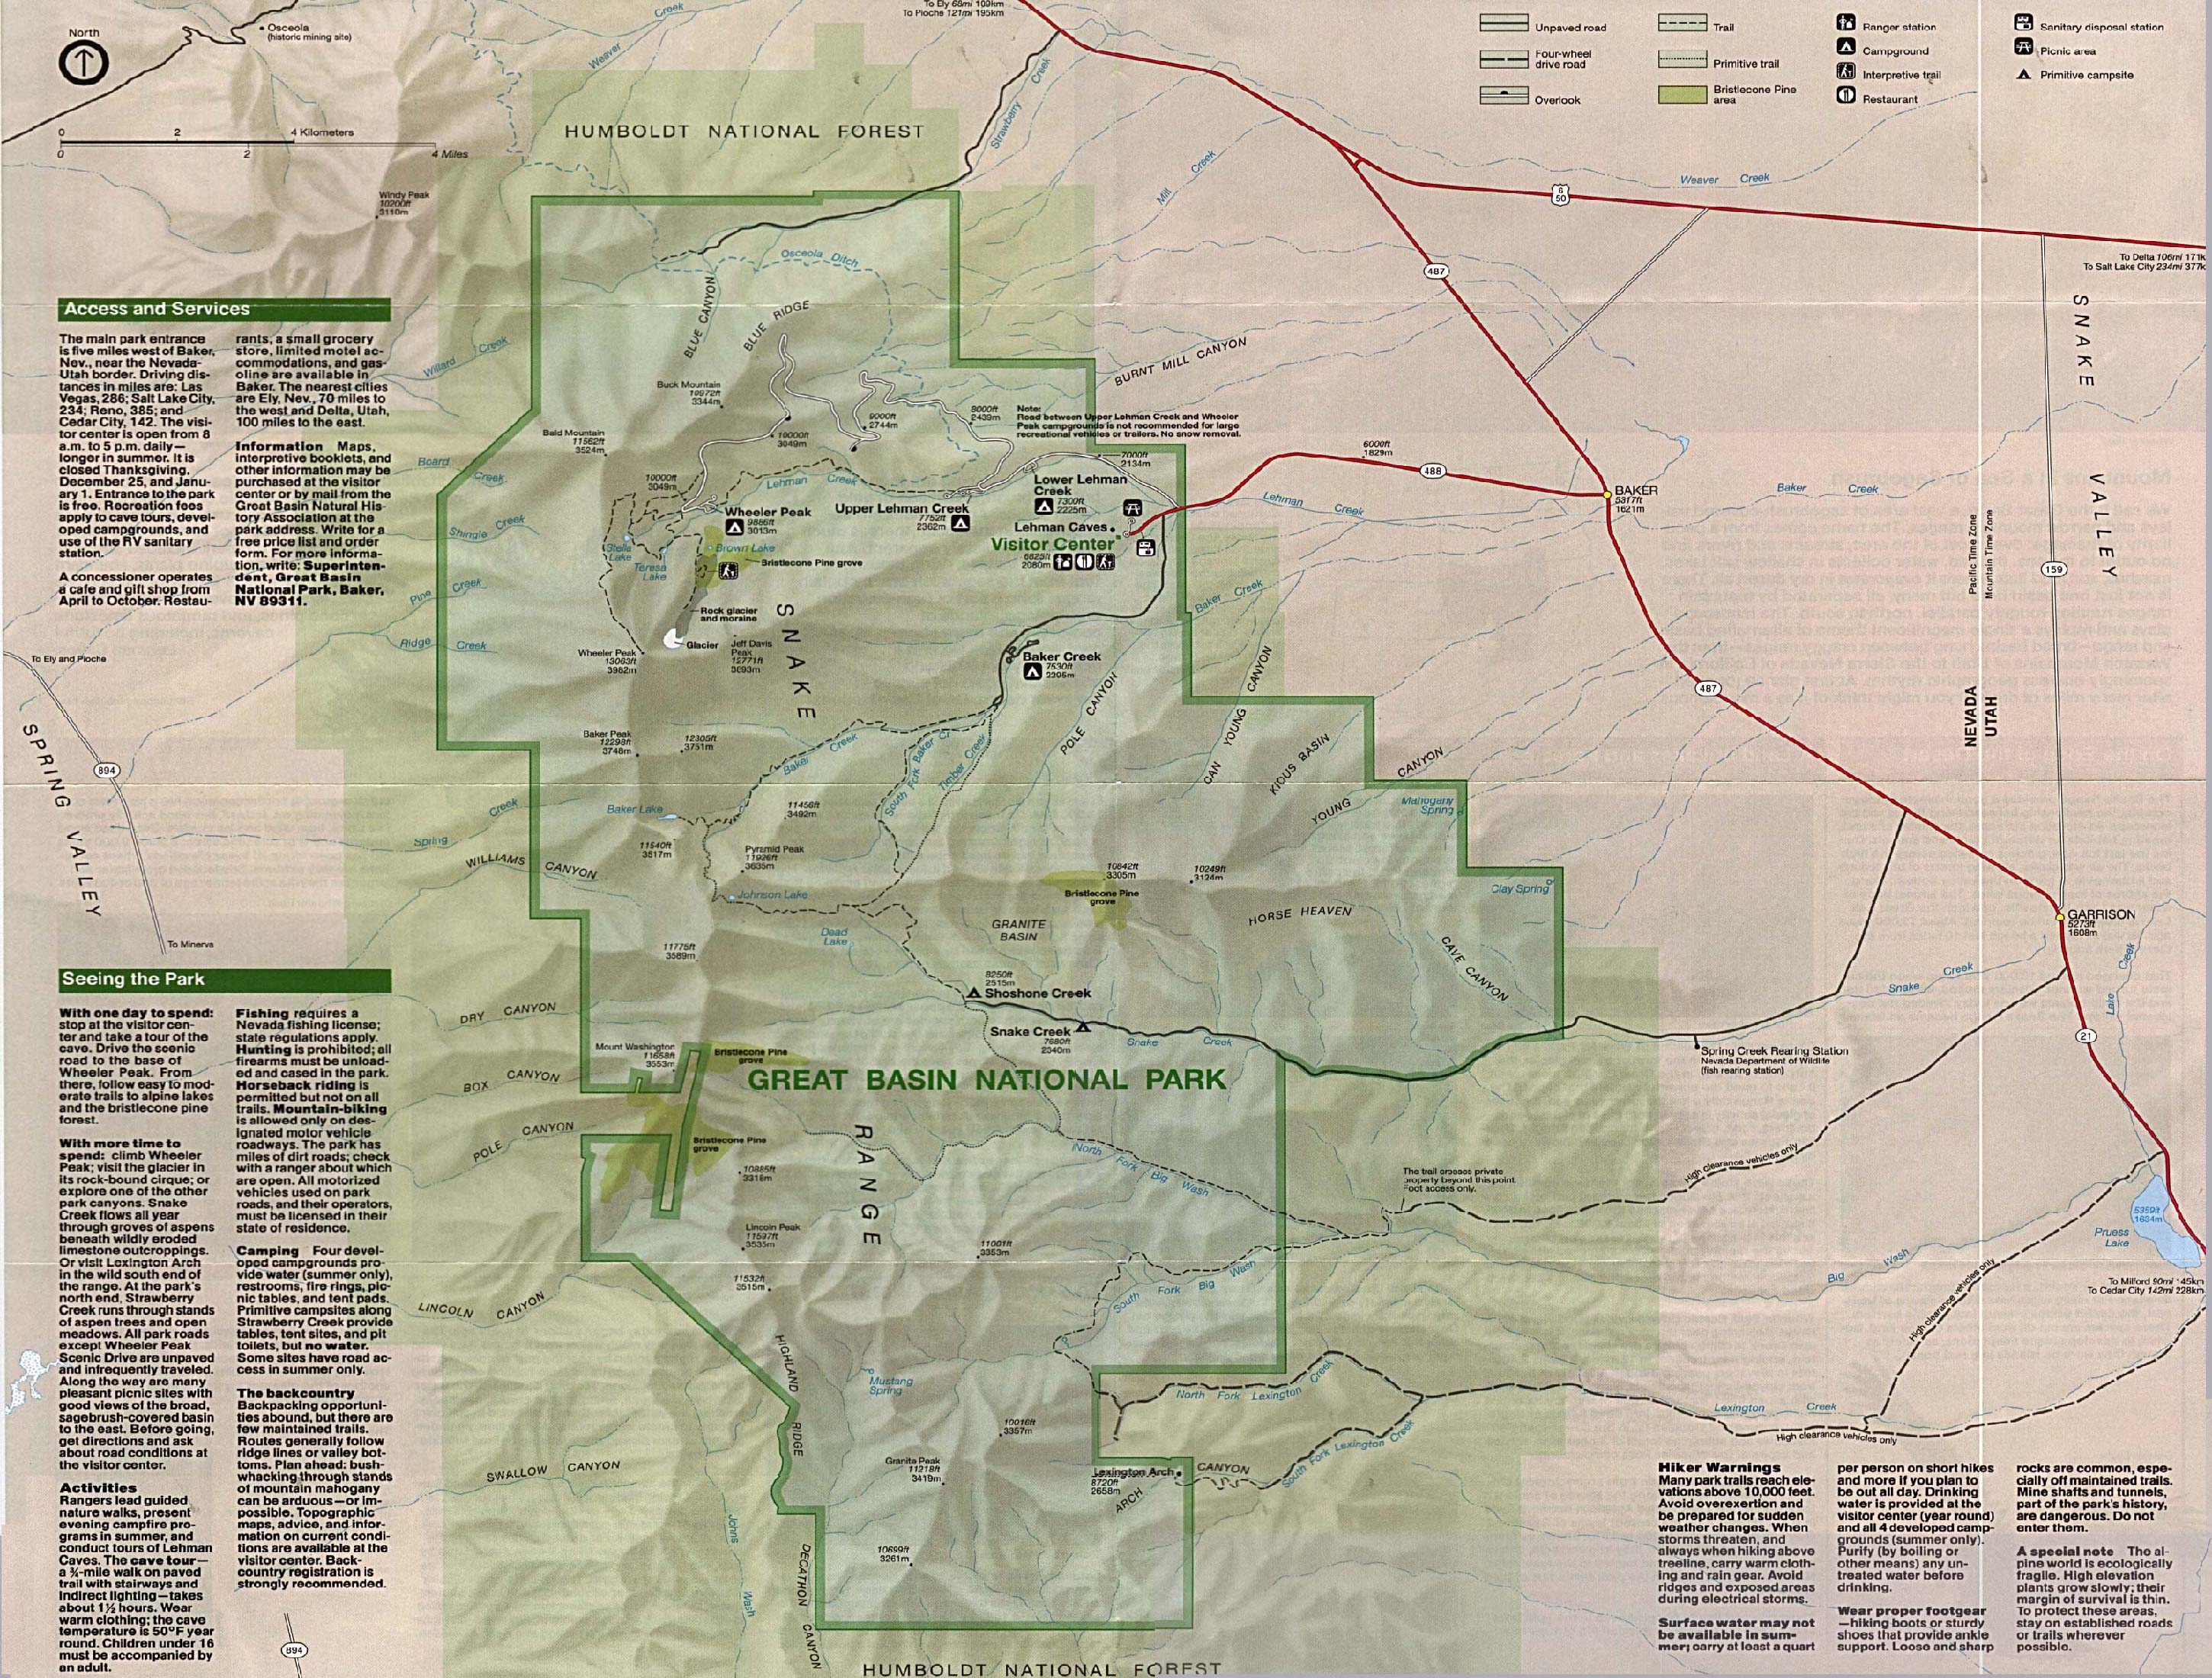 Maps of United States National Parks, Monuments and Historic Sites Great Basin National Park [Nevada] (Park Map / Shaded Relief) 1995 (1MB)